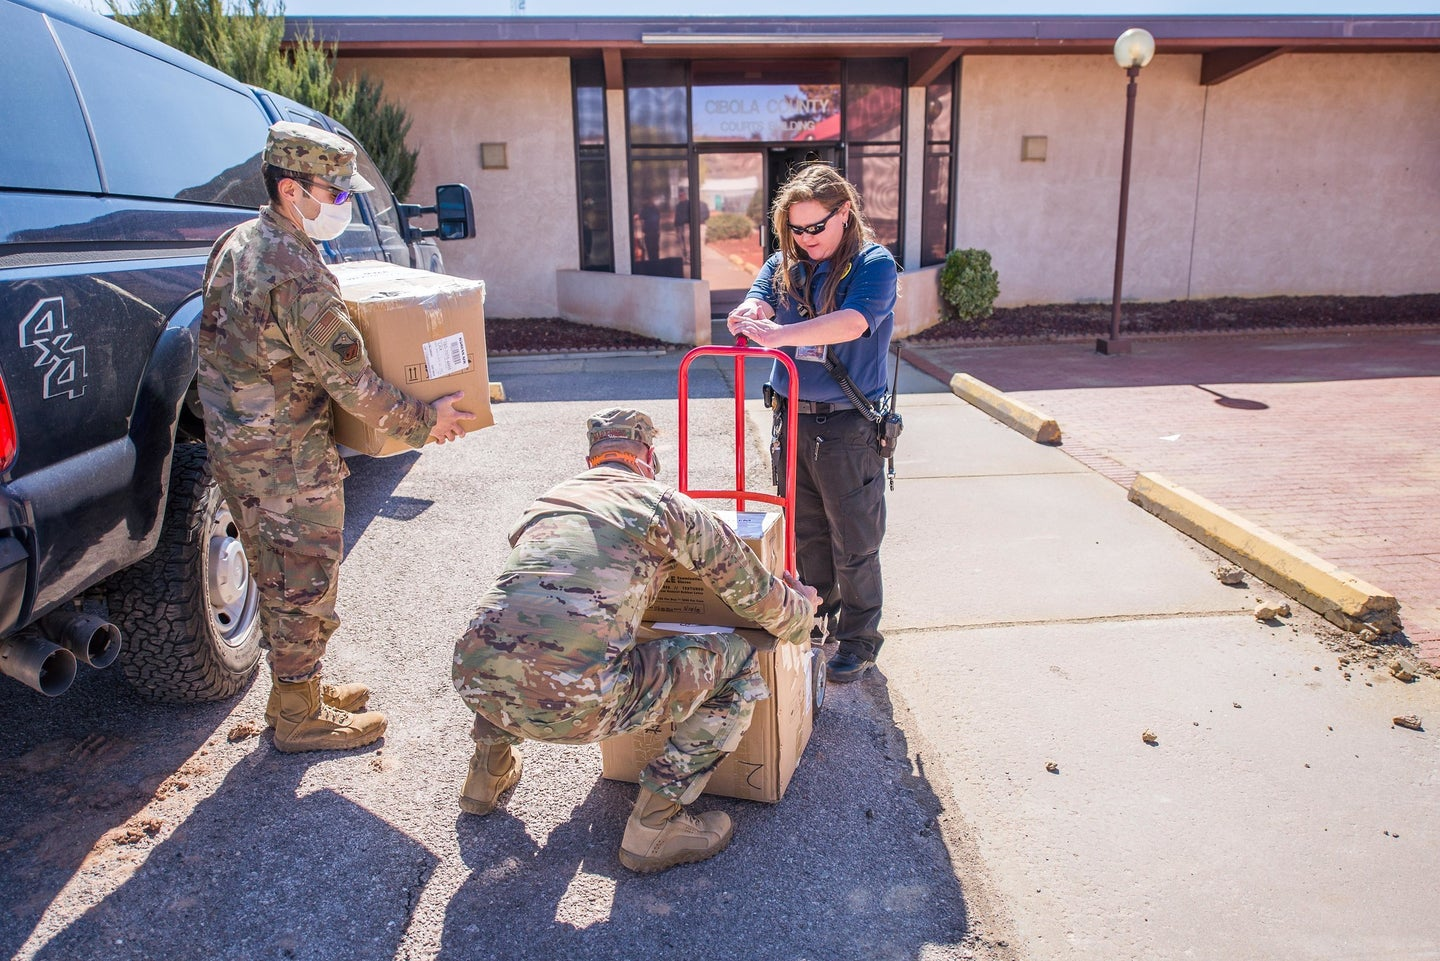 National Guard members dressed in camo dropping off COVID-19 PPE at a health clinic in New Mexico